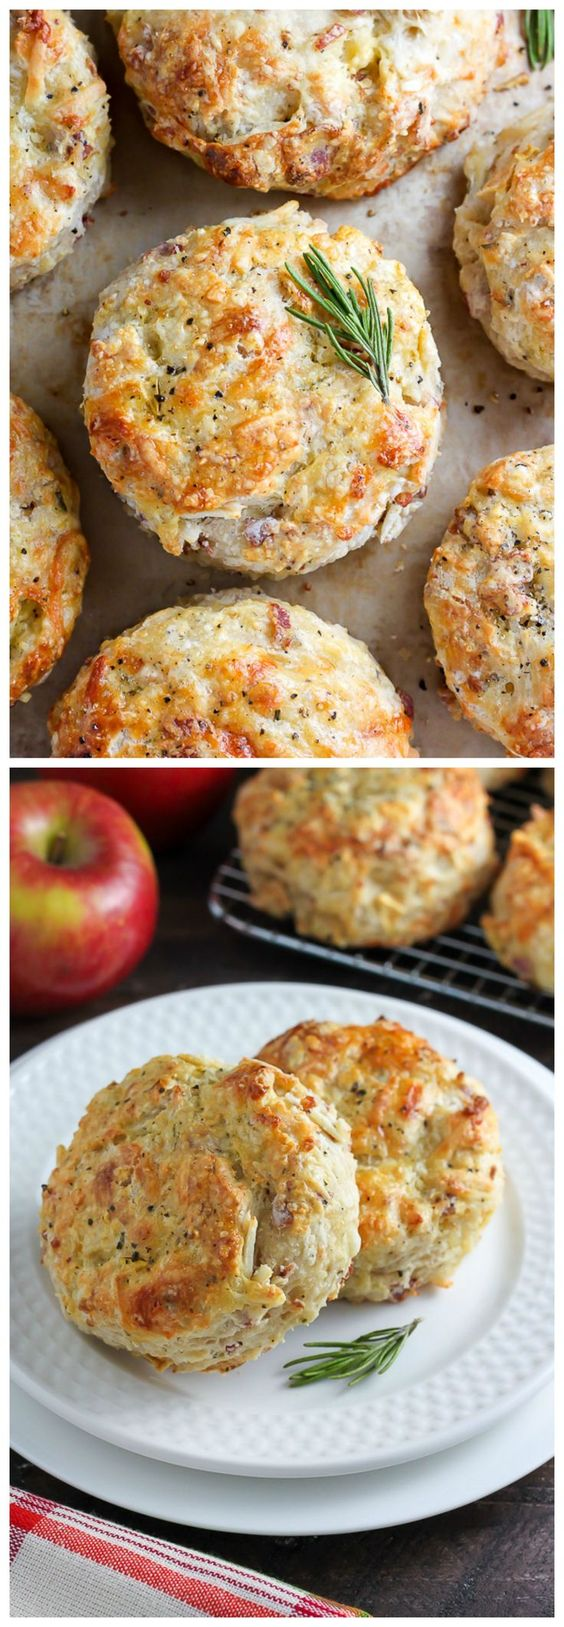 "White Cheddar, Bacon and Apple Biscuits Recipe via Baker by Nature ""White cheddar cheese, crispy bacon, and apple make these buttery biscuits irresistible!"" - The Best Homemade Biscuits Recipes - Quick, Easy and Delicious Bread Sides for Breakfast, Brunch, Lunch and Family Dinner! #biscuits #biscuitrecipes #homemdebiscuits #easybiscuits #rolls #homemadebreadsides #bread #breakfastrecipes #comfortfood"